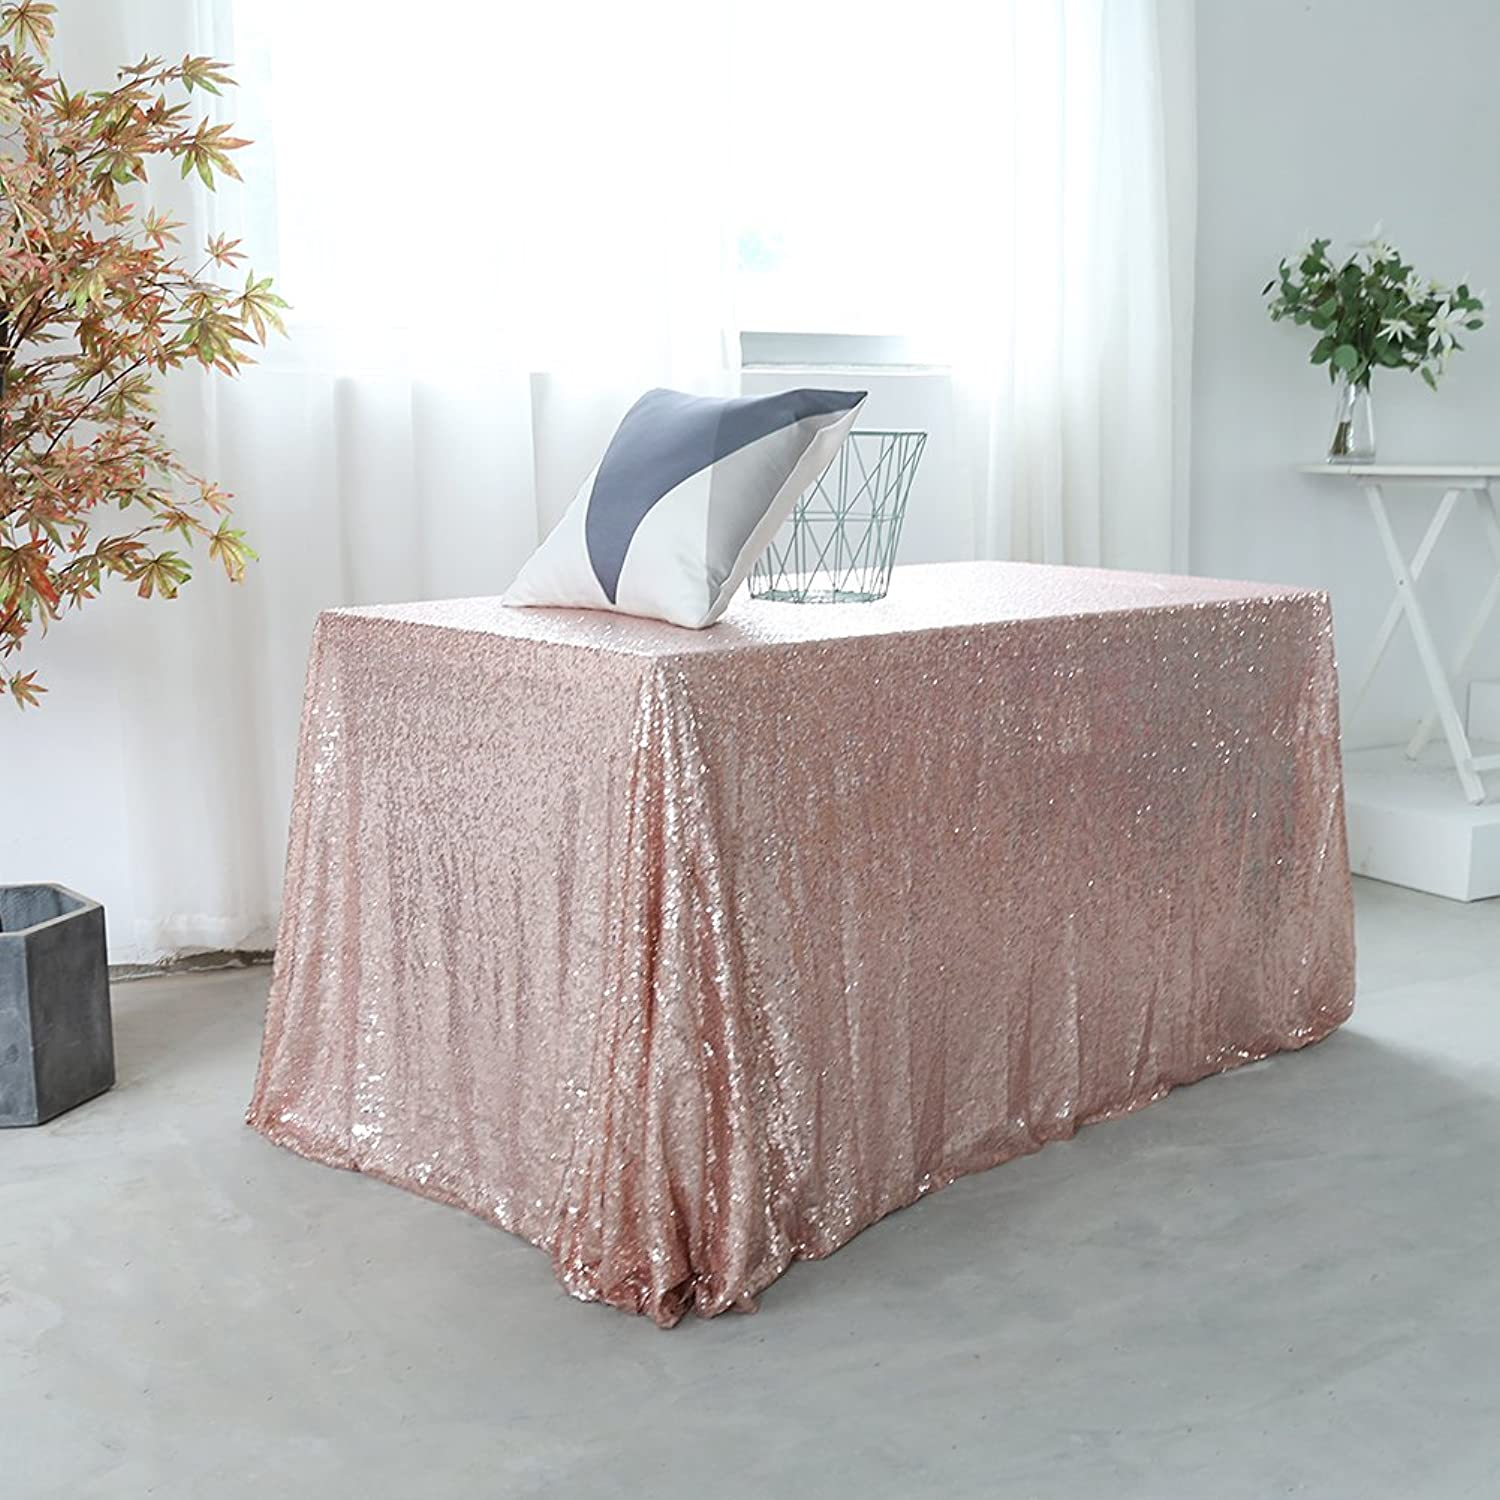 GFCC 90x132'' Christmas pink gold Sequin Tablecloth Rectangular Sparkly Table Cloth Wedding Party Birthday Event Decoration Baby Shower